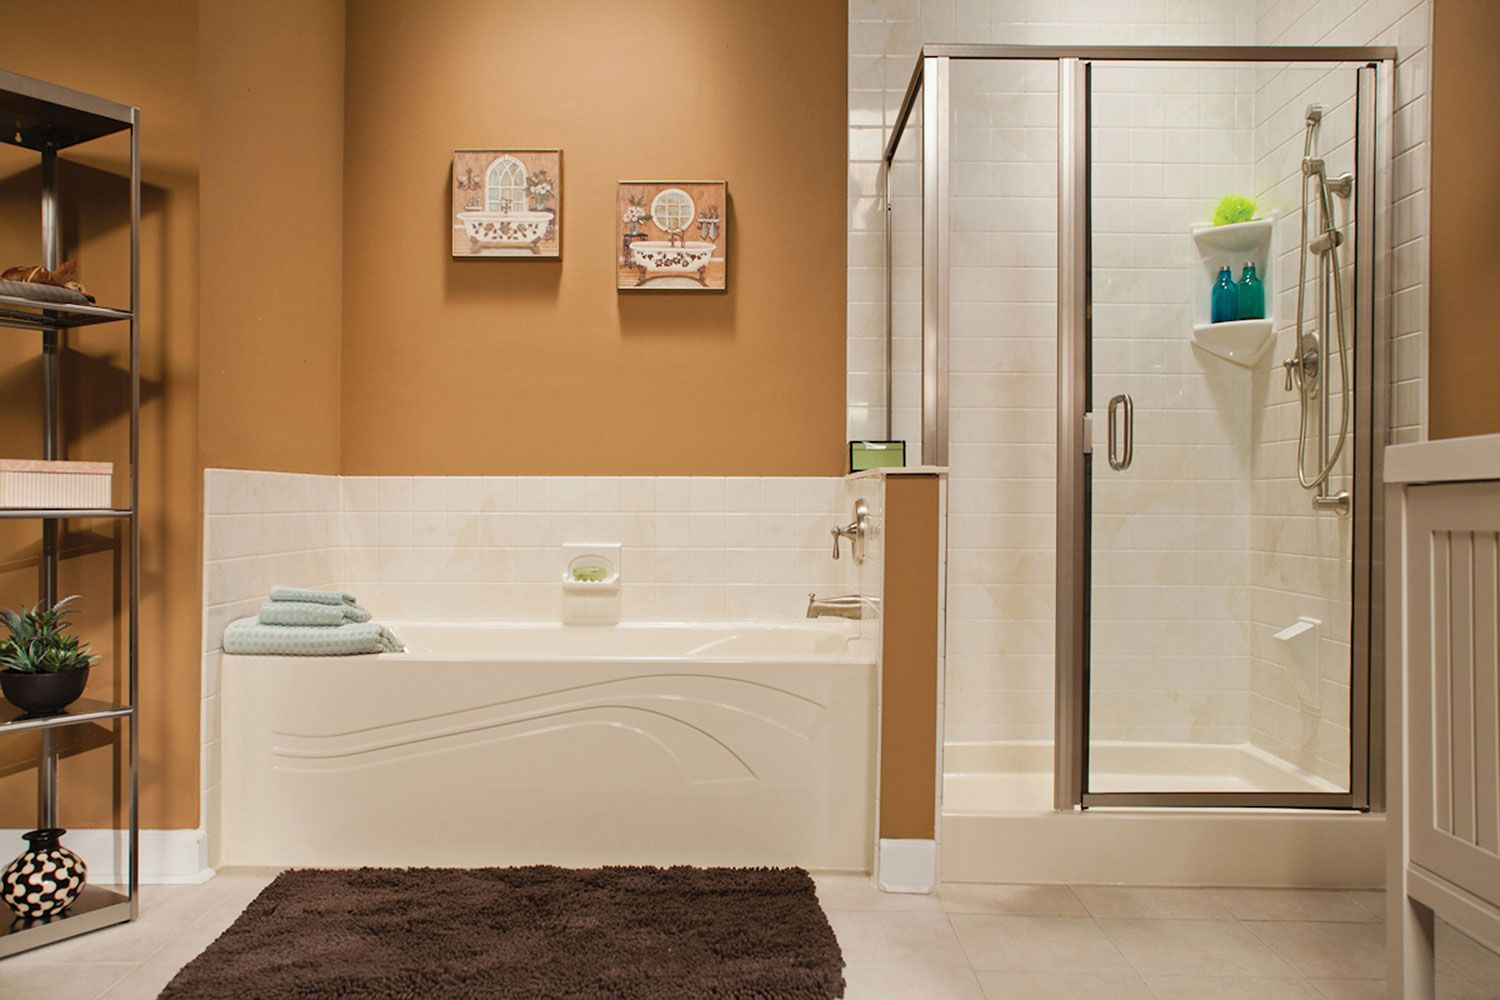 Bathtub Refinishing And Reglazing Phoenix, AZ Napco Certfication Low Price  623.792.0017